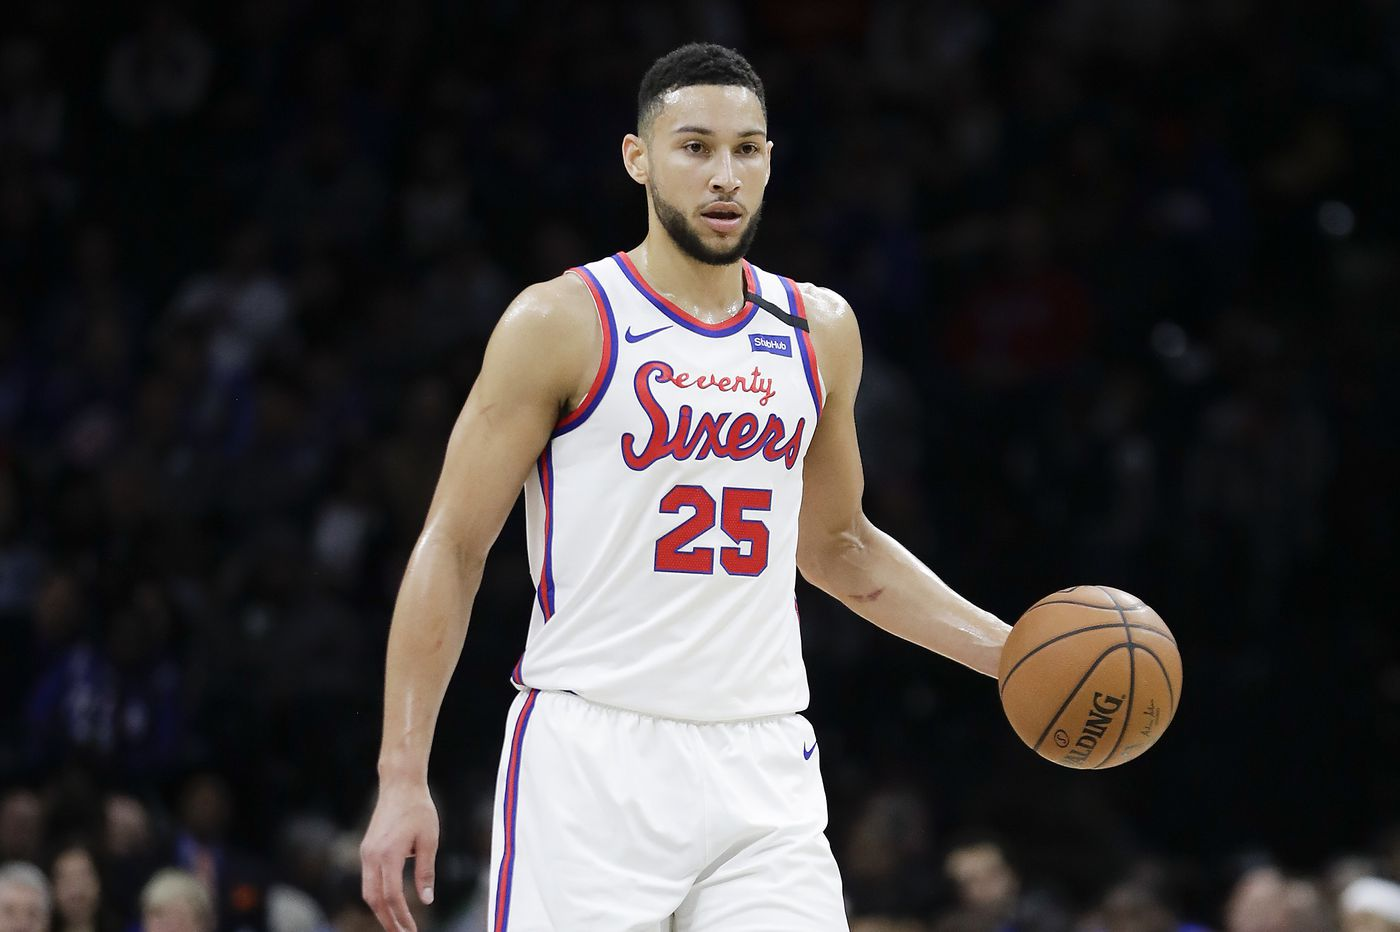 Sixers-Grizzlies best and worst: Furkan Korkmaz's three-point clinic, Ben Simmons' defense